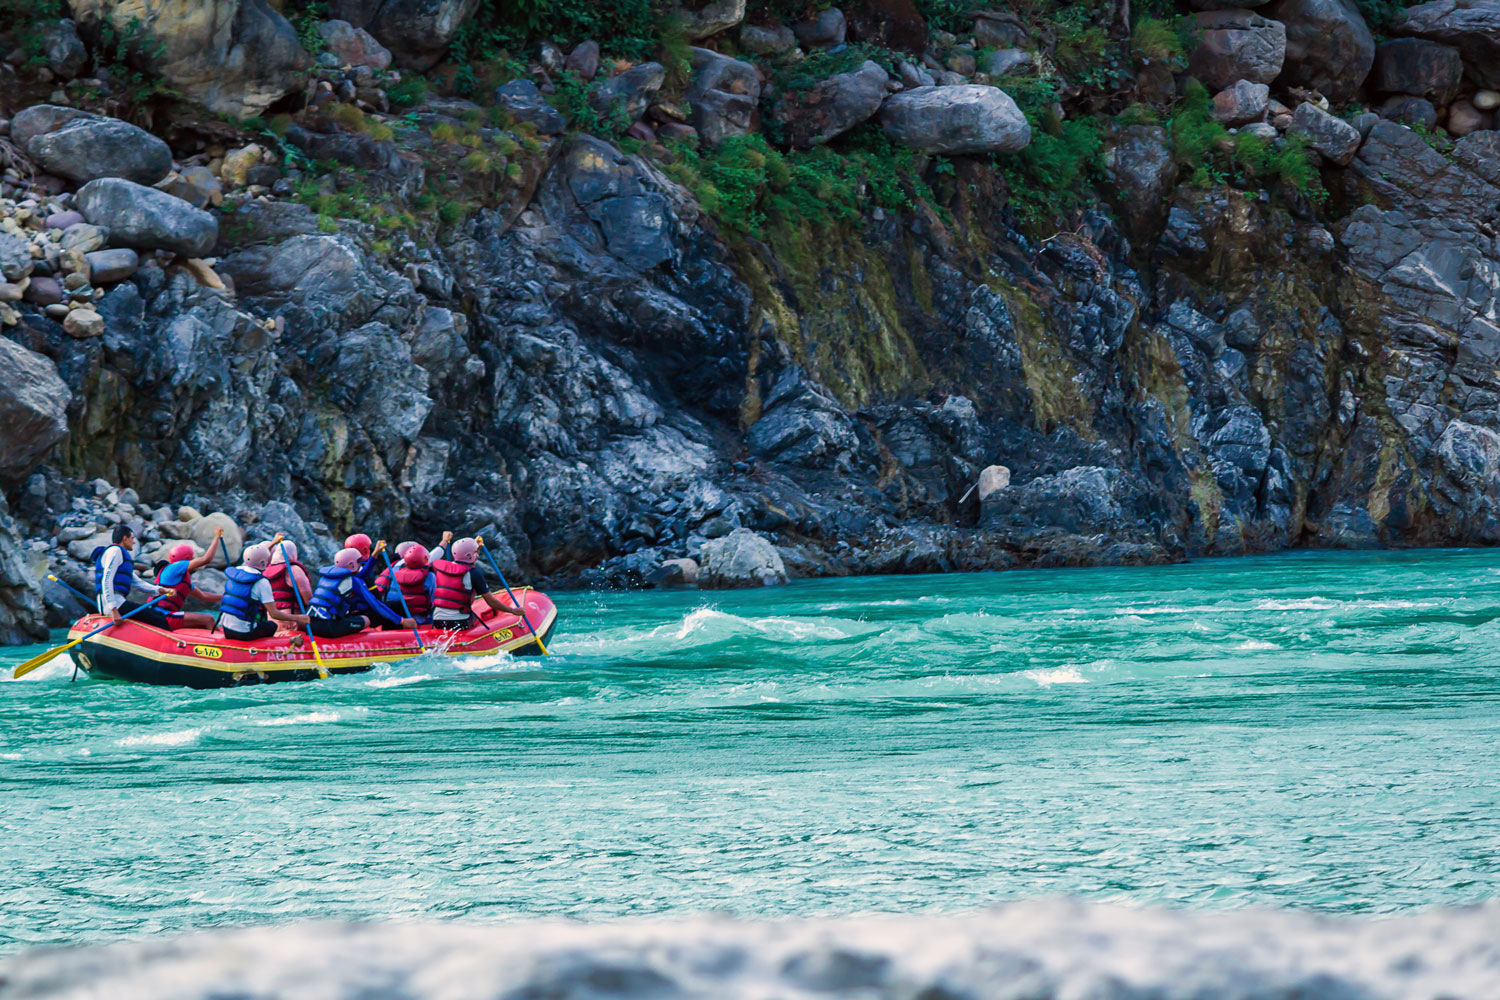 Rafting on the Ganges River in Rishikesh, India